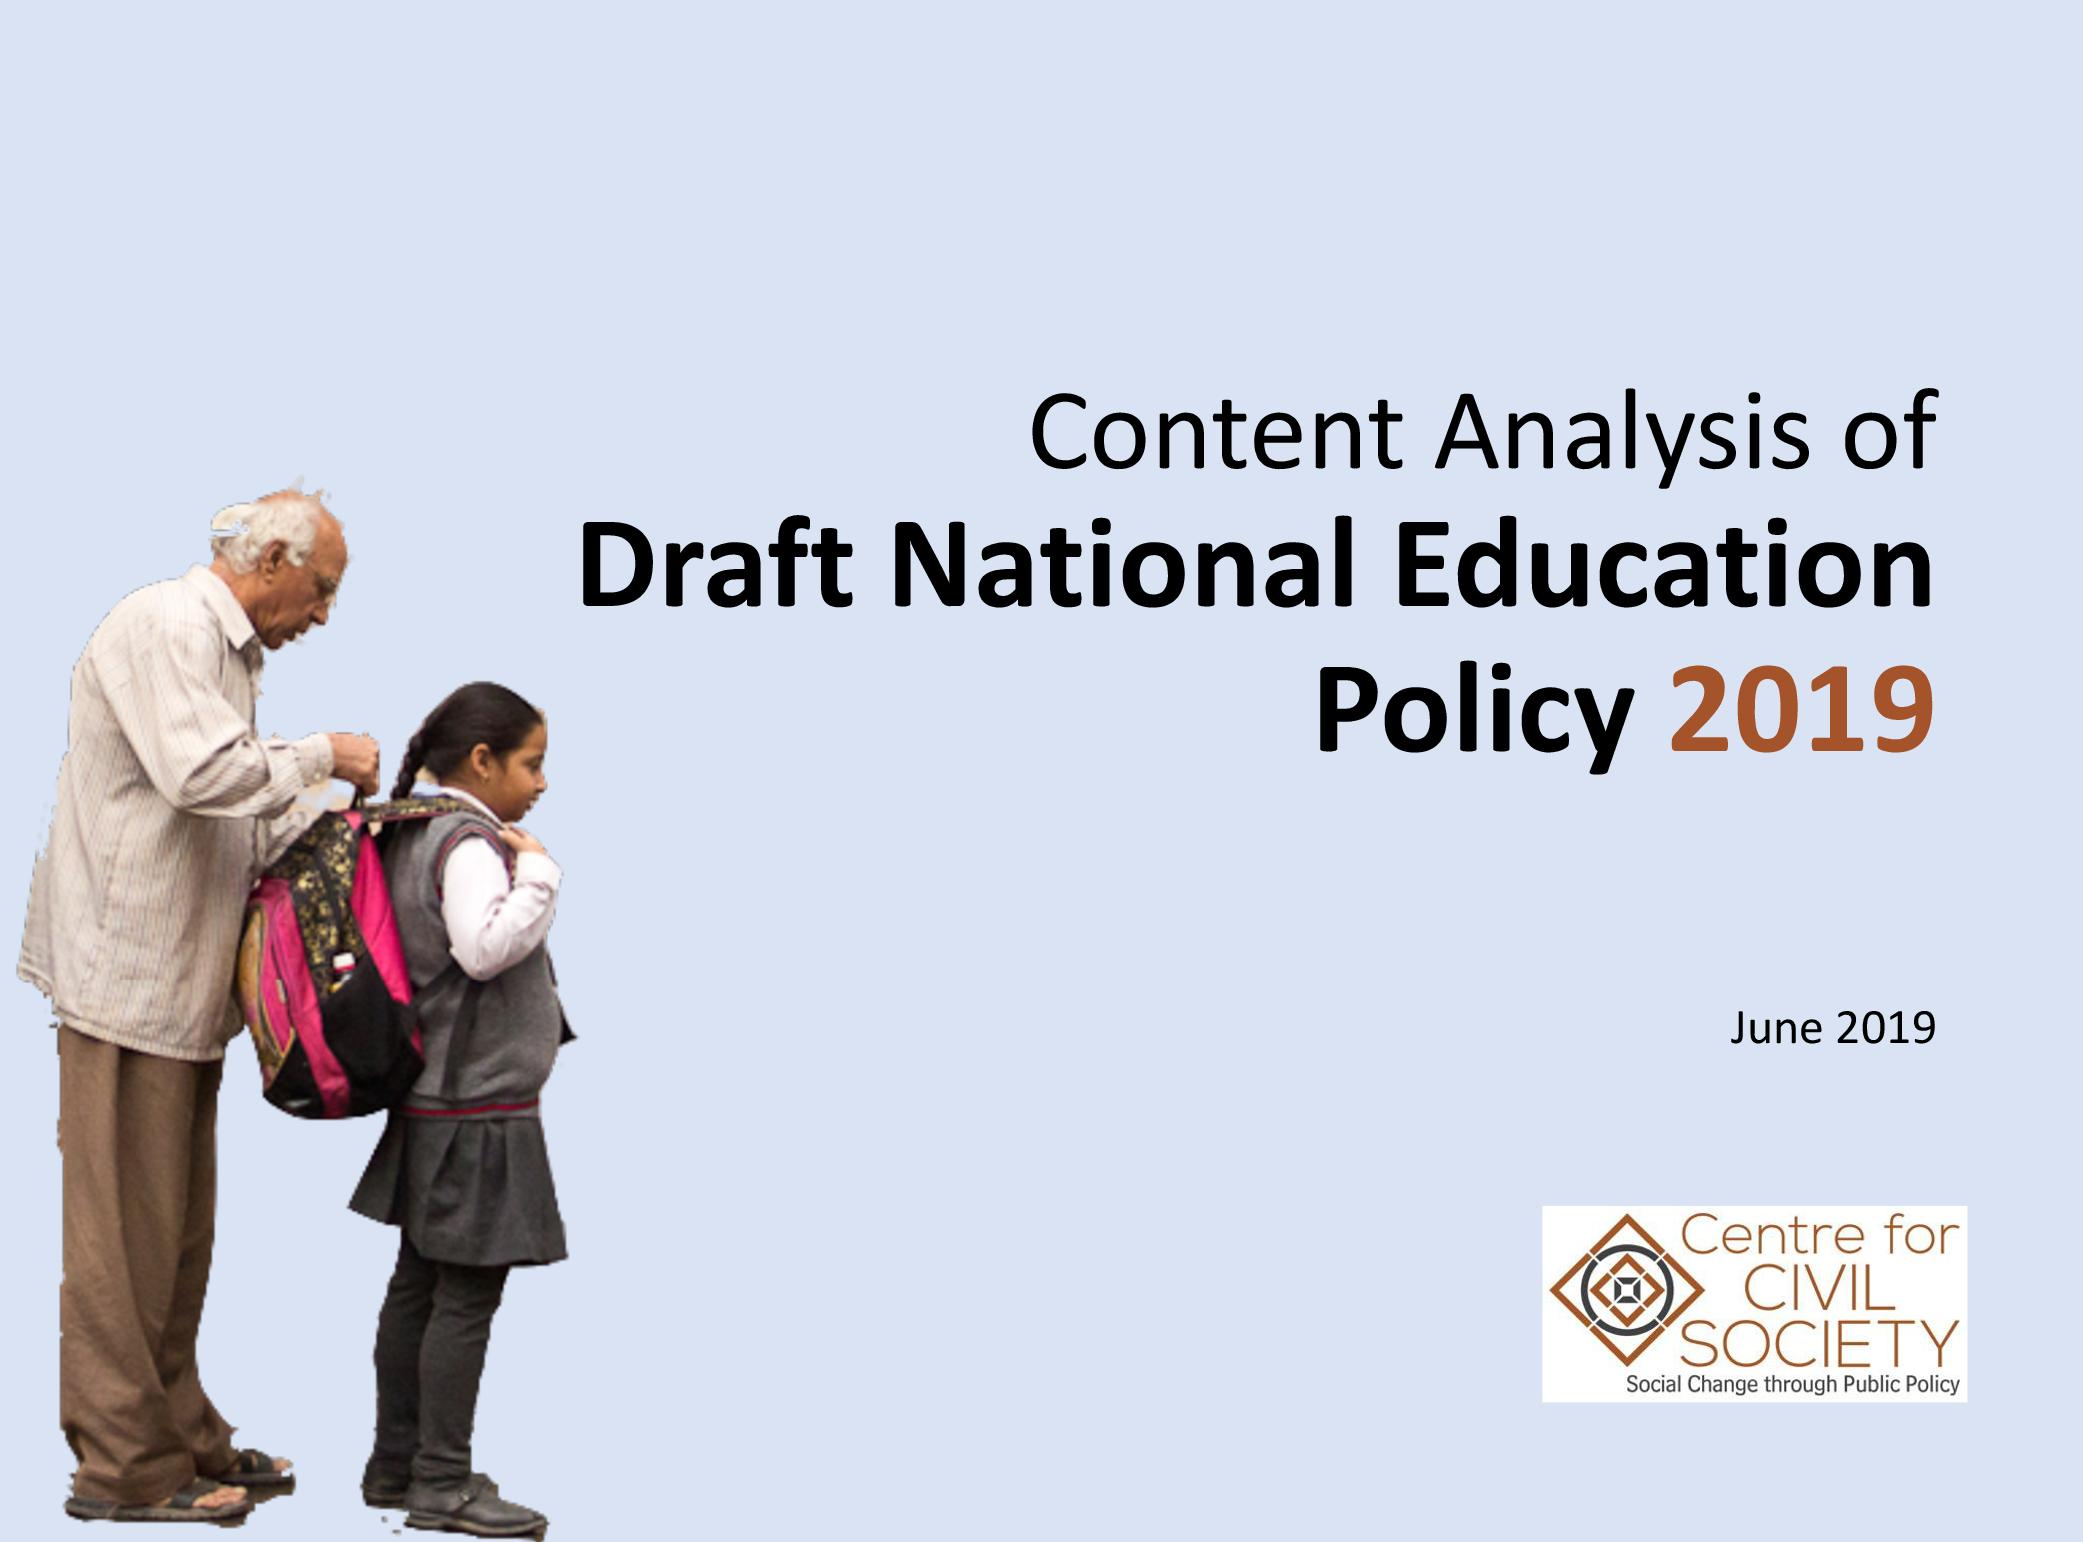 Content Analysis of the Draft National Education Policy